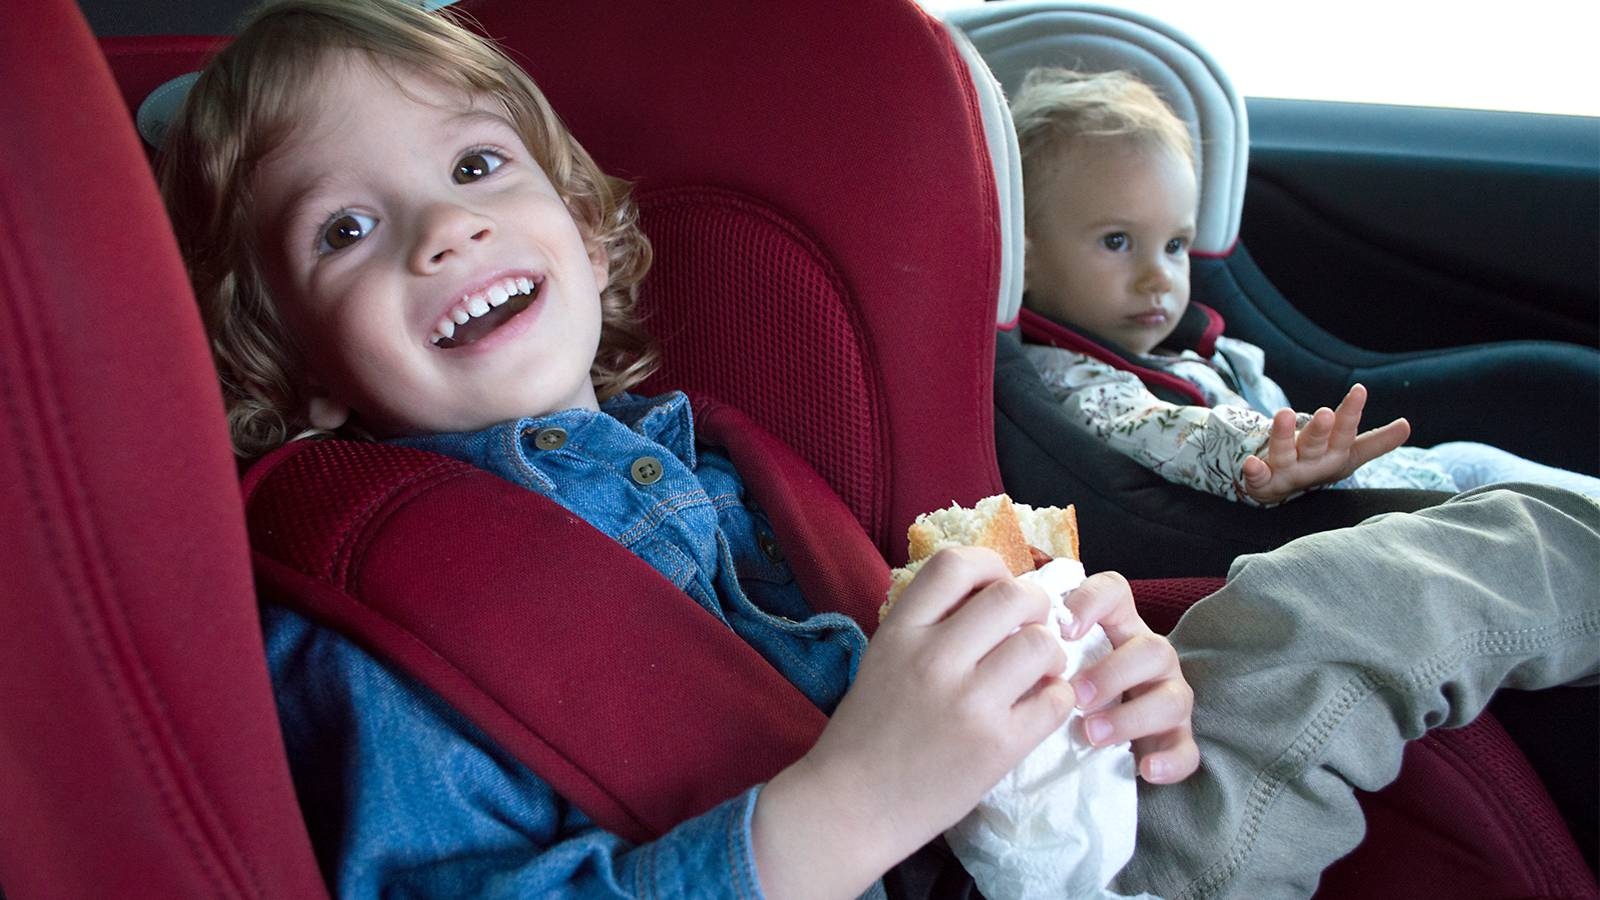 Parents-8-ways-to-protect-your-car-from-your-kids-MAIN